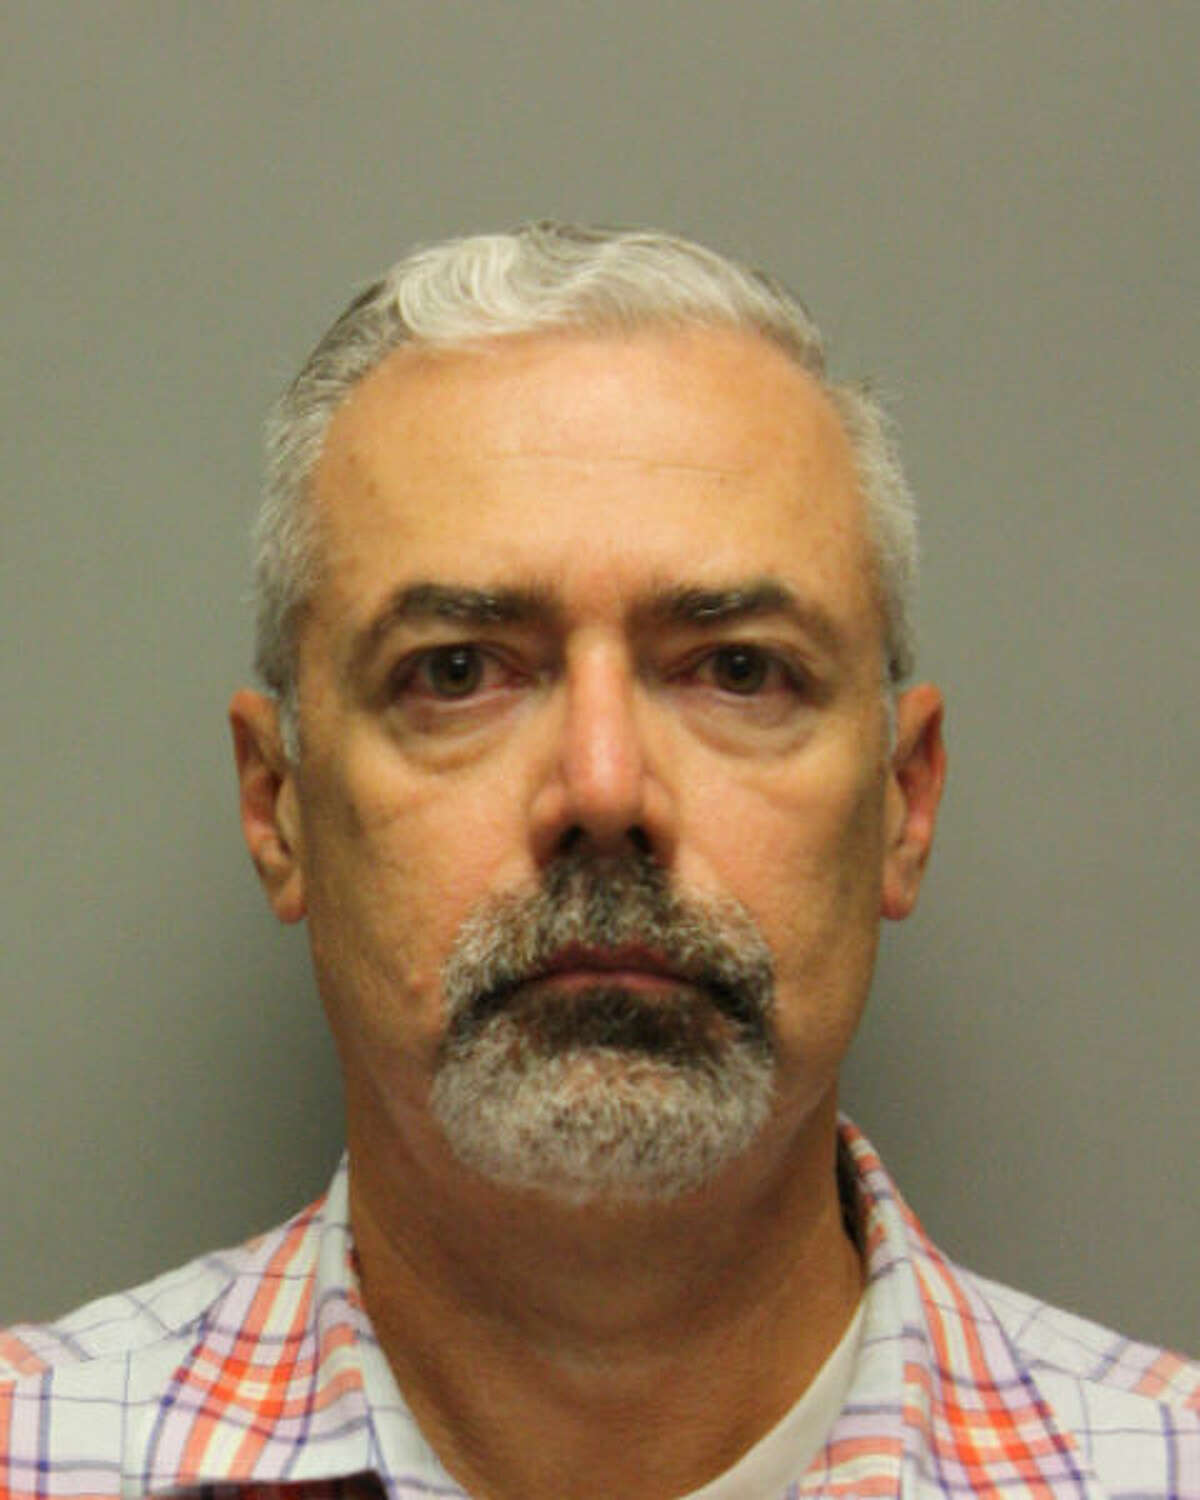 Name: Eddie Hilburn Church position: Pastor Conviction: 2018, Harris County Outcome: Pleaded guilty to misdemeanor (soliciting) prostitution charge and received deferred adjudication on Jan. 8, 2018. Ordered to serve a year of community supervision, but he was discharged early and the case was dismissed on June 1, 2018, according to Harris County court records.